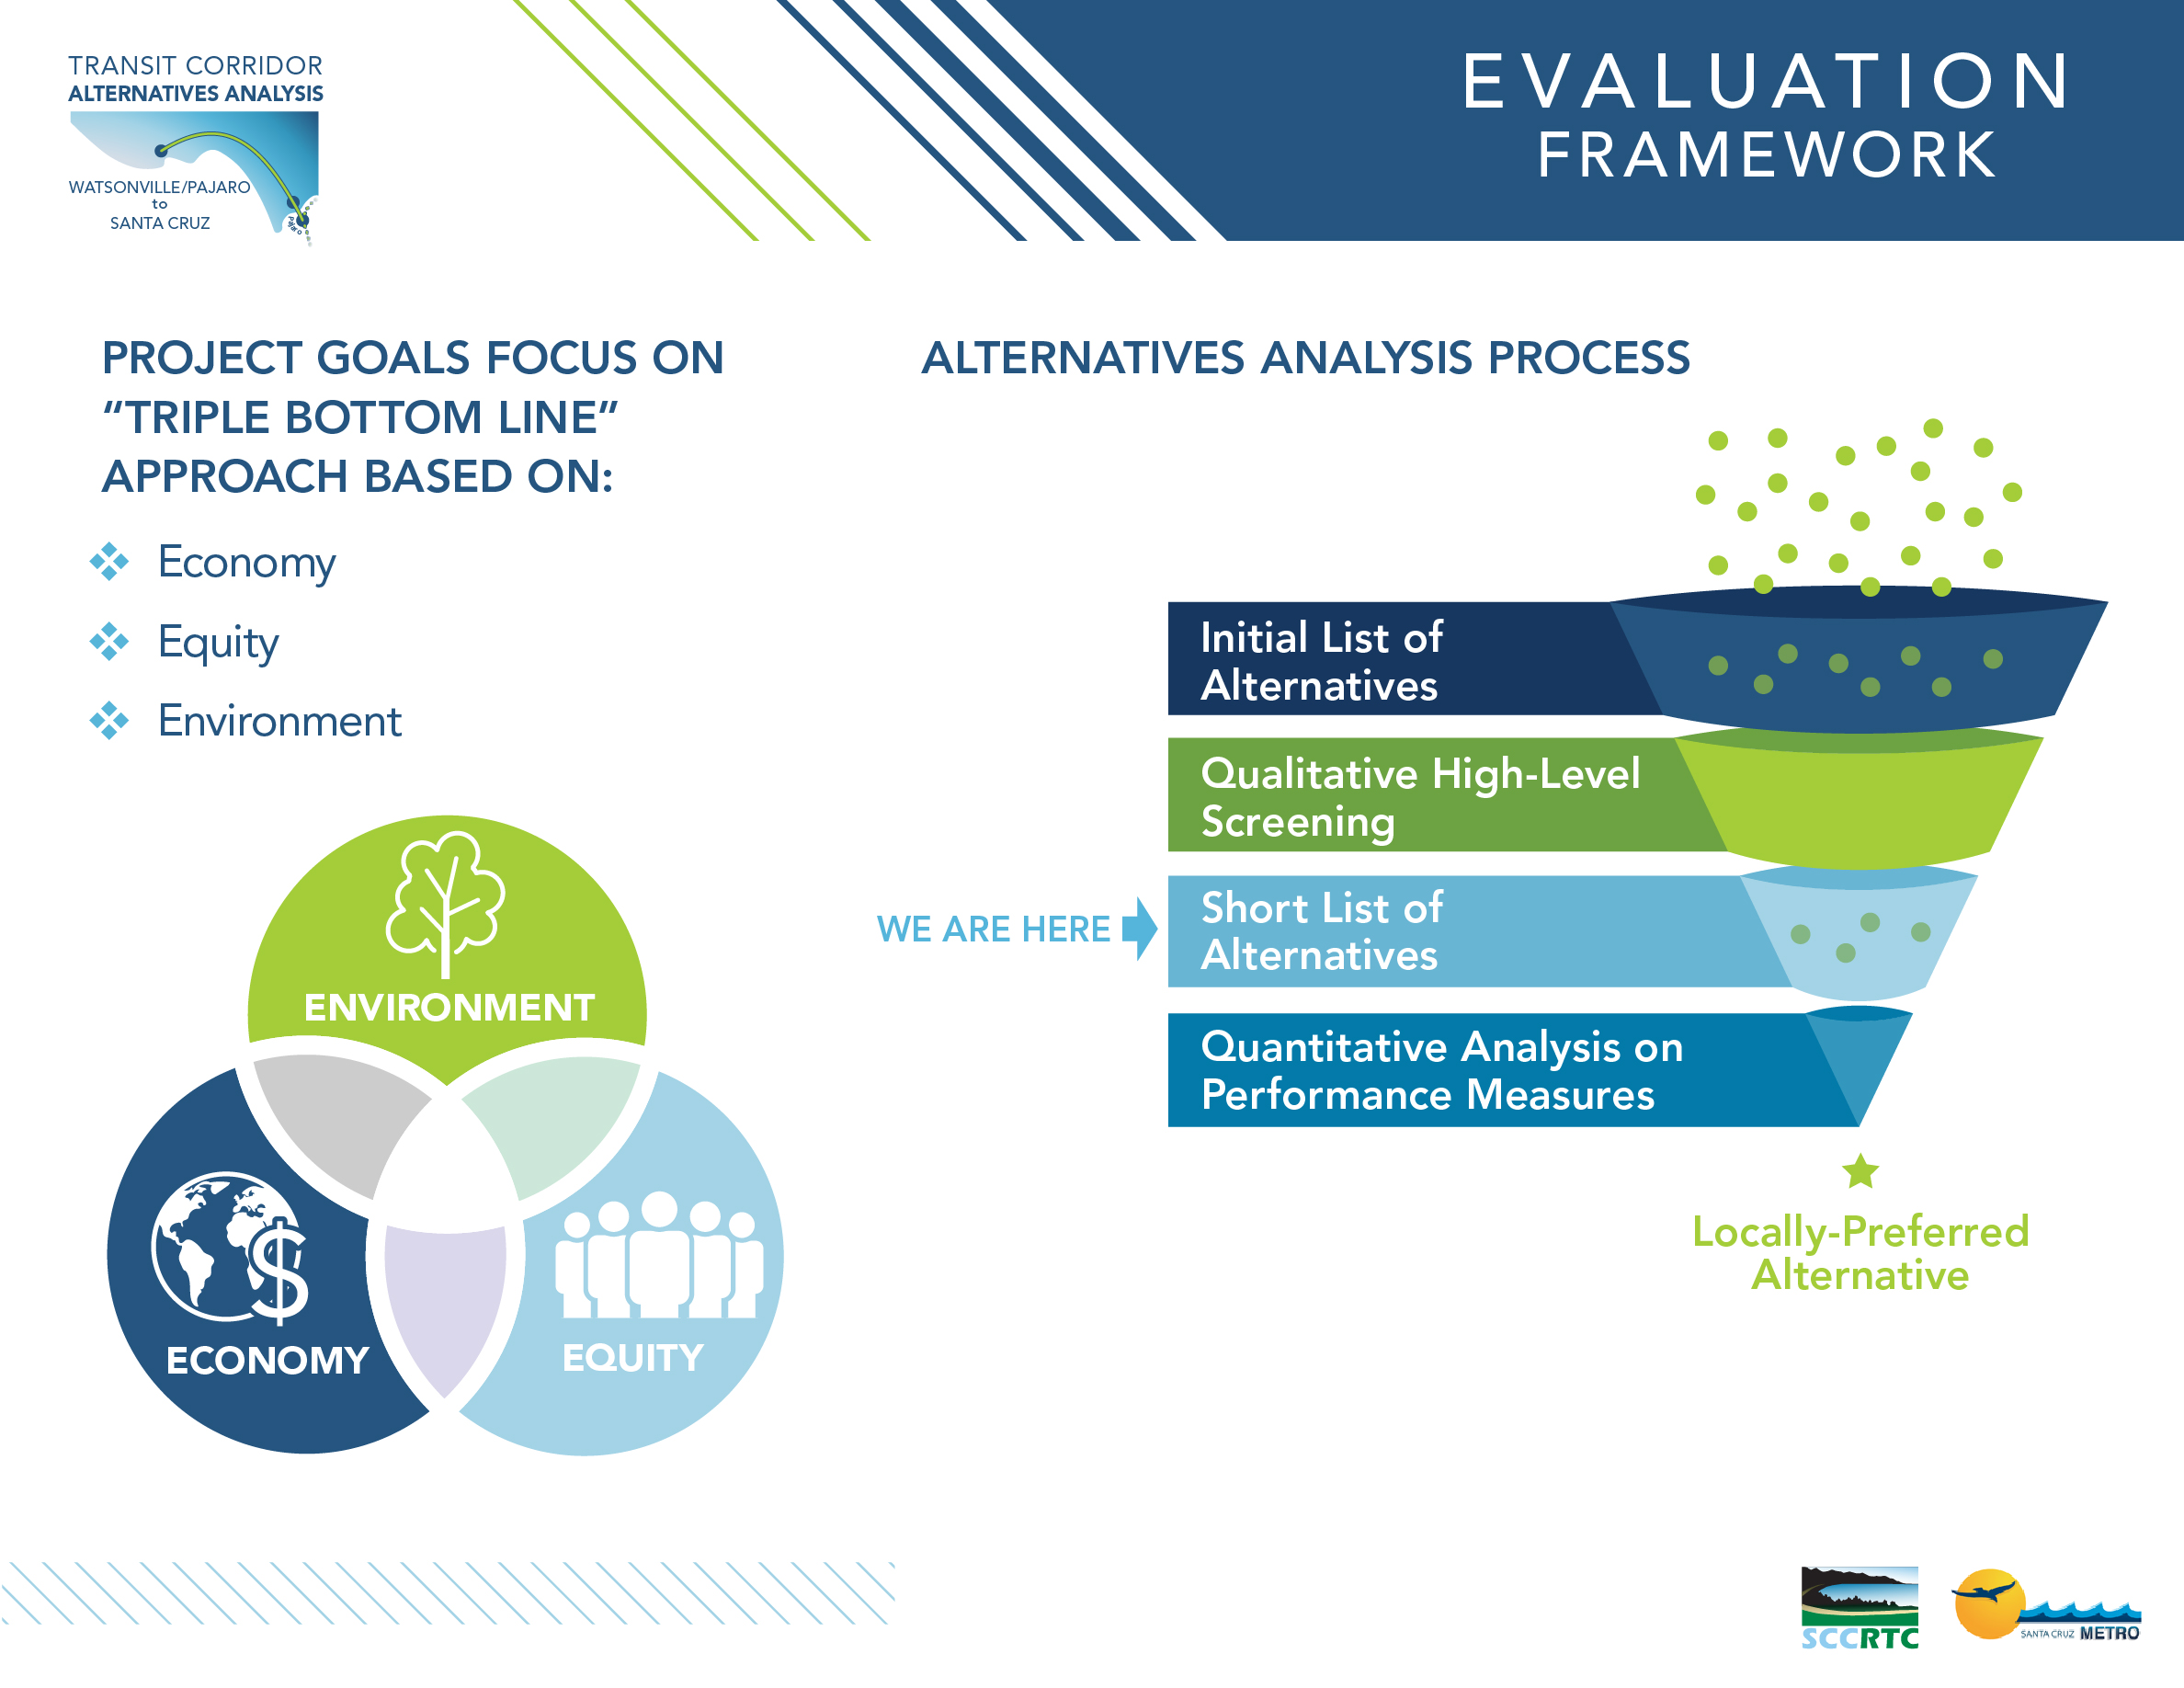 Board 1: Evaluation Framework Project Goals focus on Triple Bottom Line approach based on Economy, Equity and Environment The alternatives analysis process begins with an initial list of alternatives that will go through a high-level qualitative screening to get a short list of alternatives. We are currently seeking input on the Short List of alternatives. Next, the short list of alternatives will go through a detailed quantitative performance – based analysis to identify a Locally-Preferred Alternative.